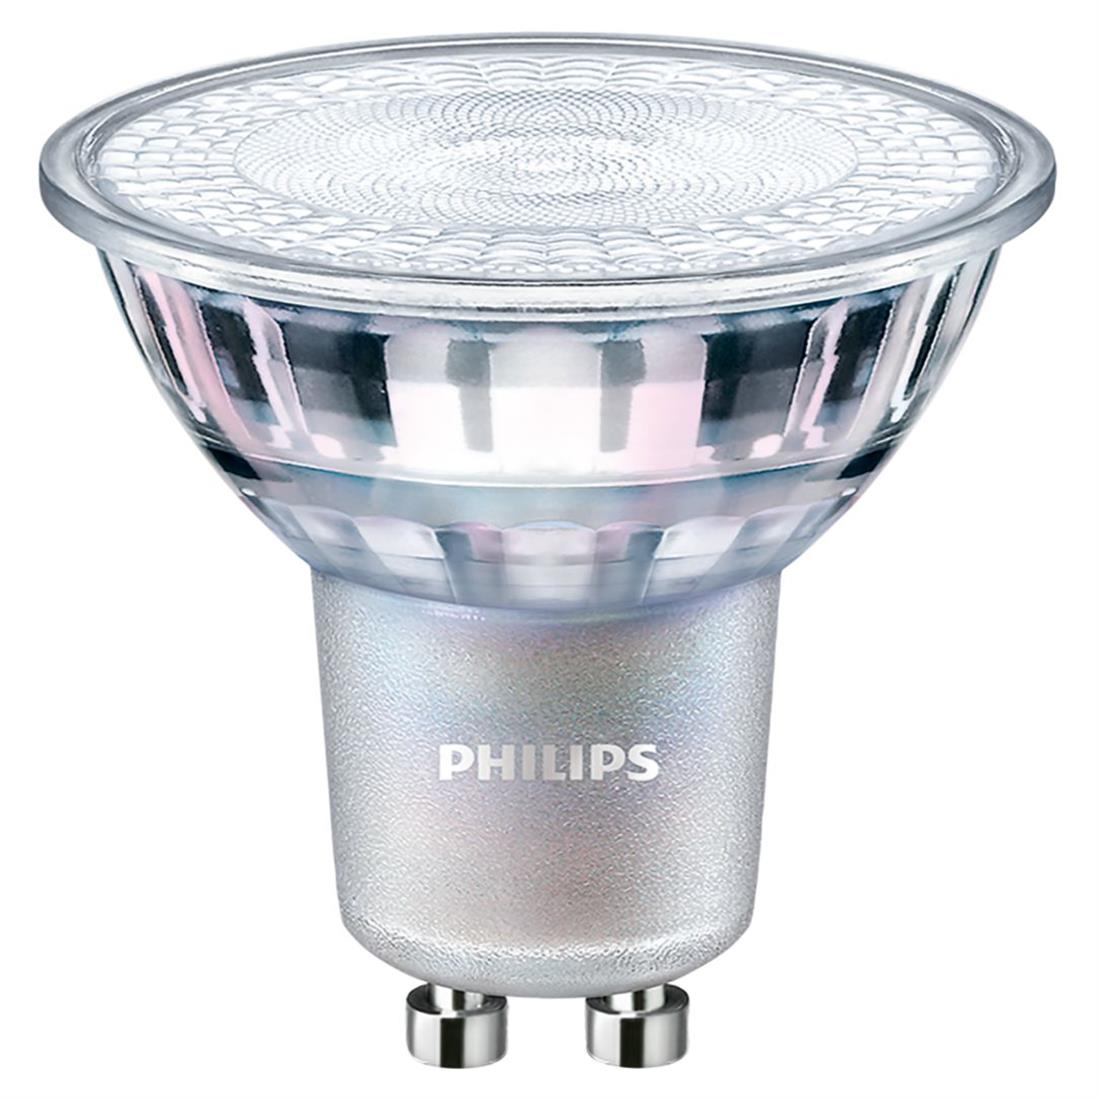 PHILIPS GU10 led lamp dimbaar 3.7W-35W wit 3000 kelvin 60gr CRI90